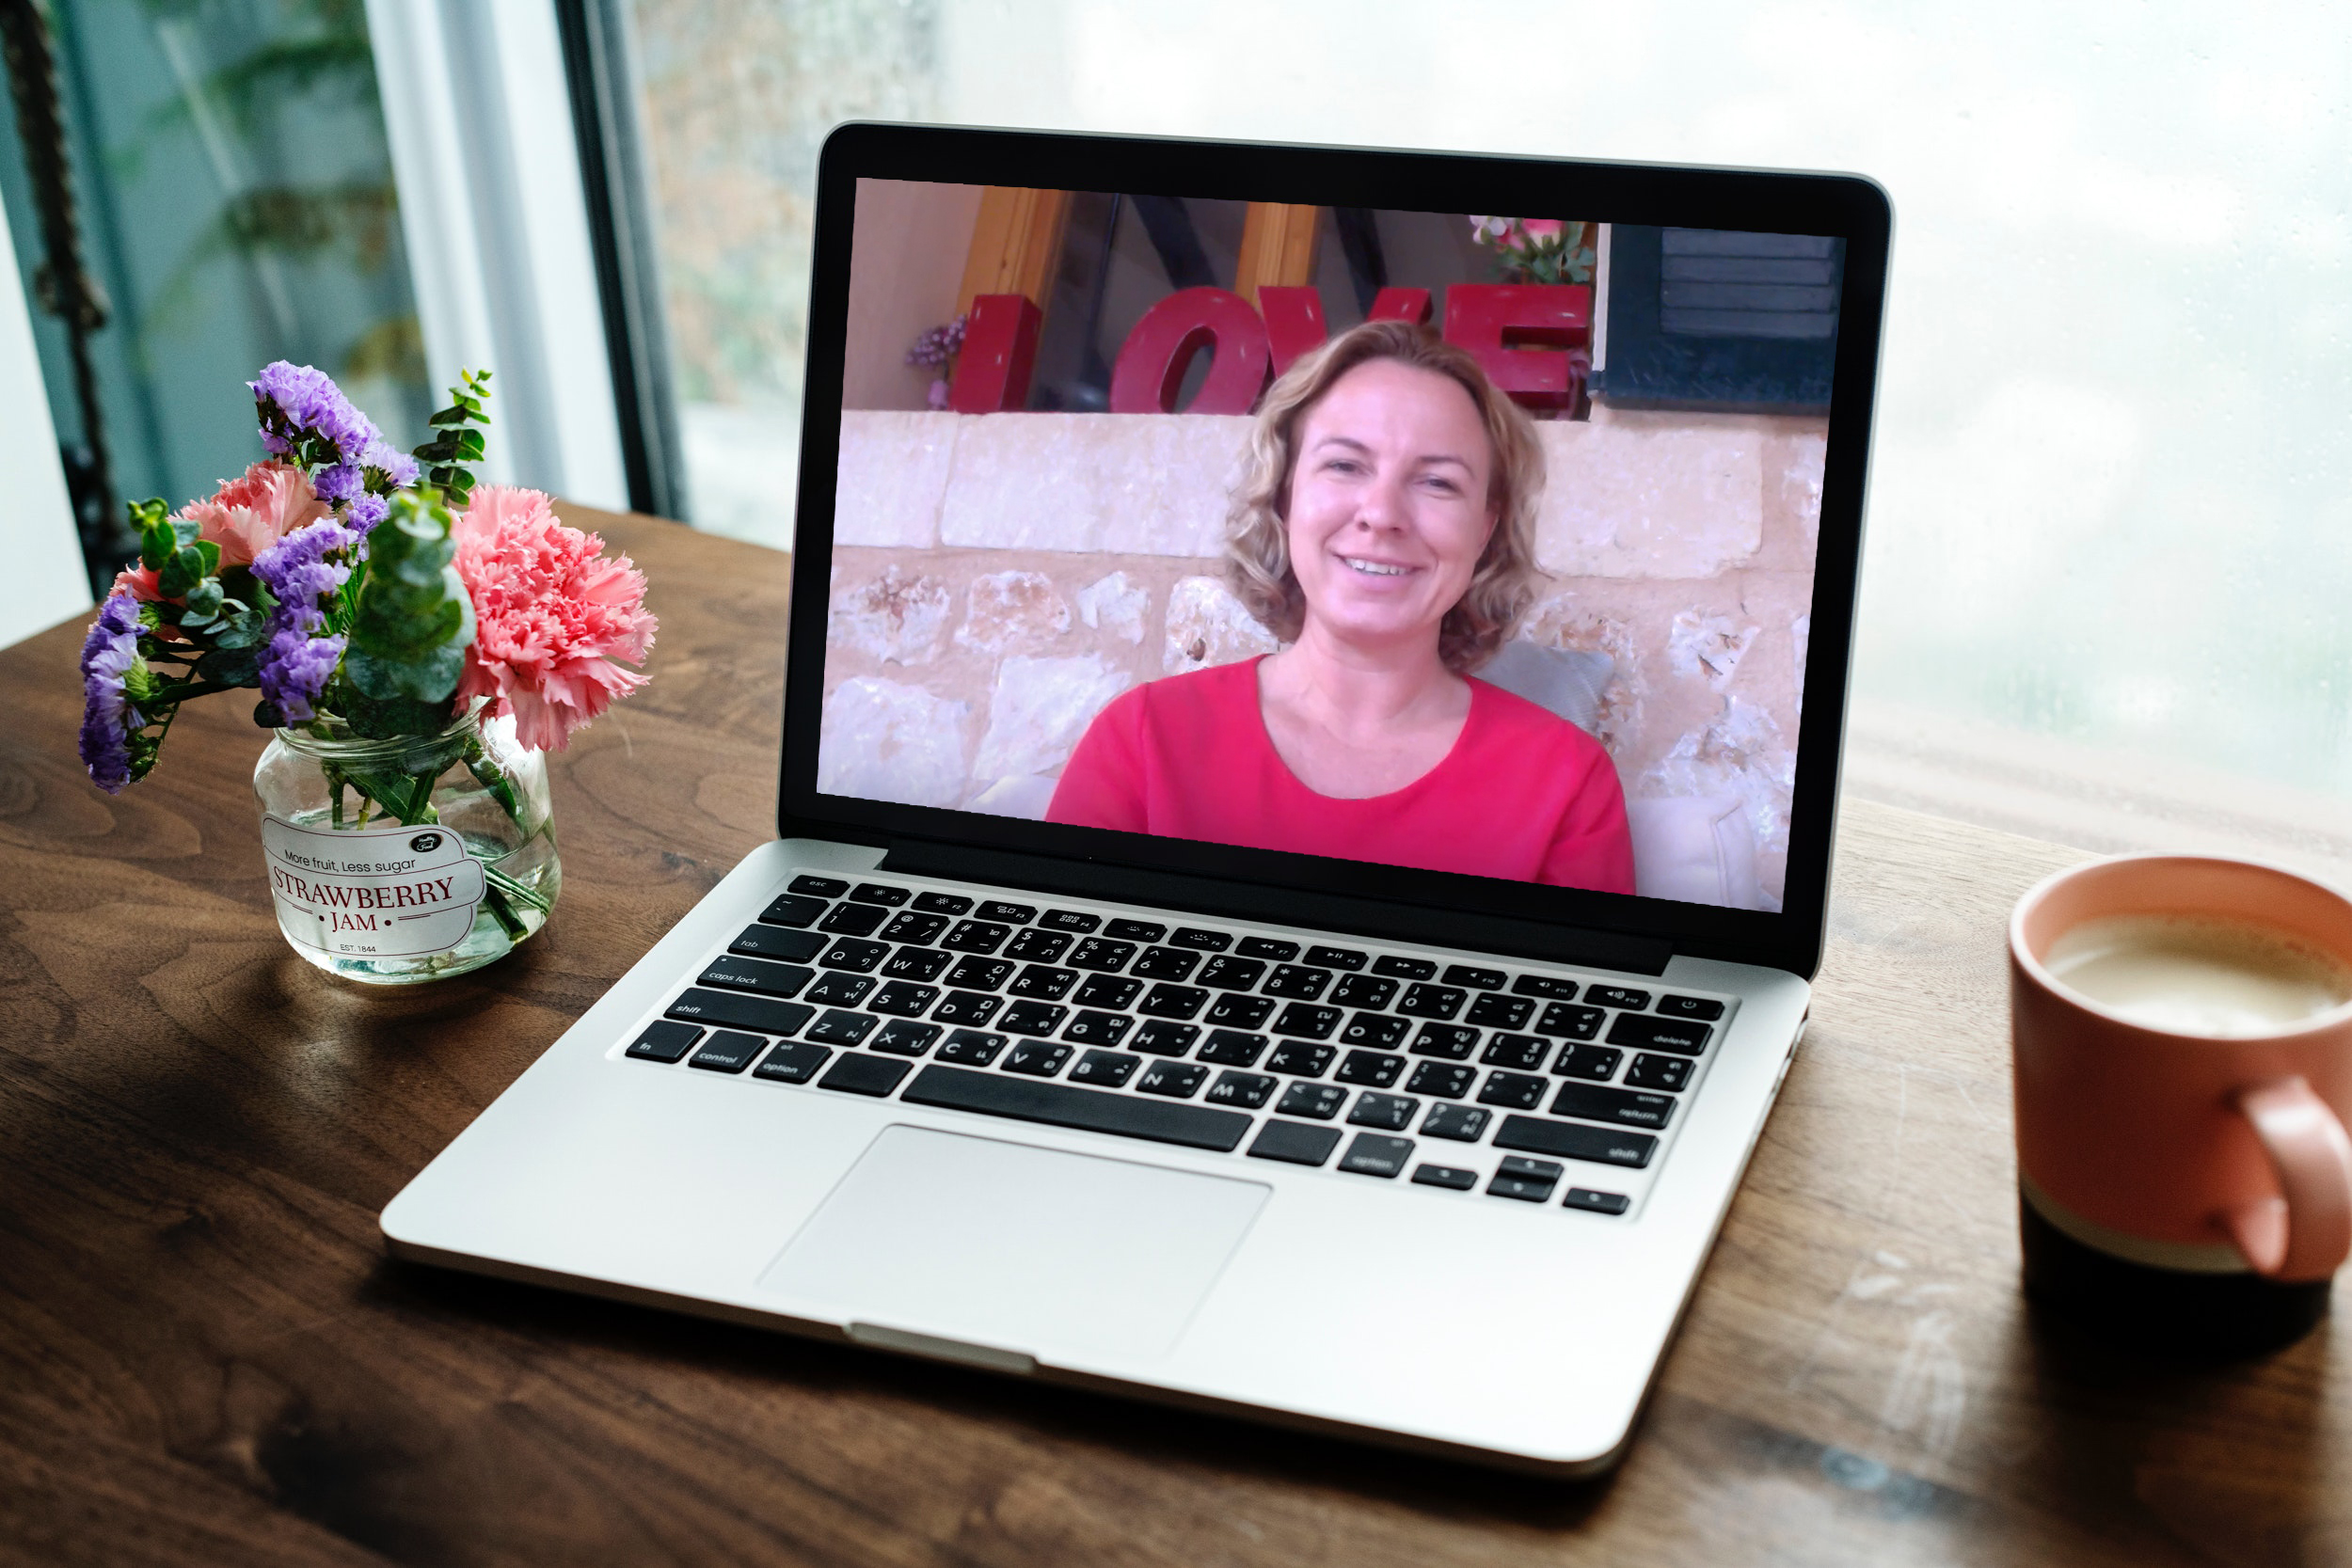 Online Coaching Patchwork Familie Hilfe